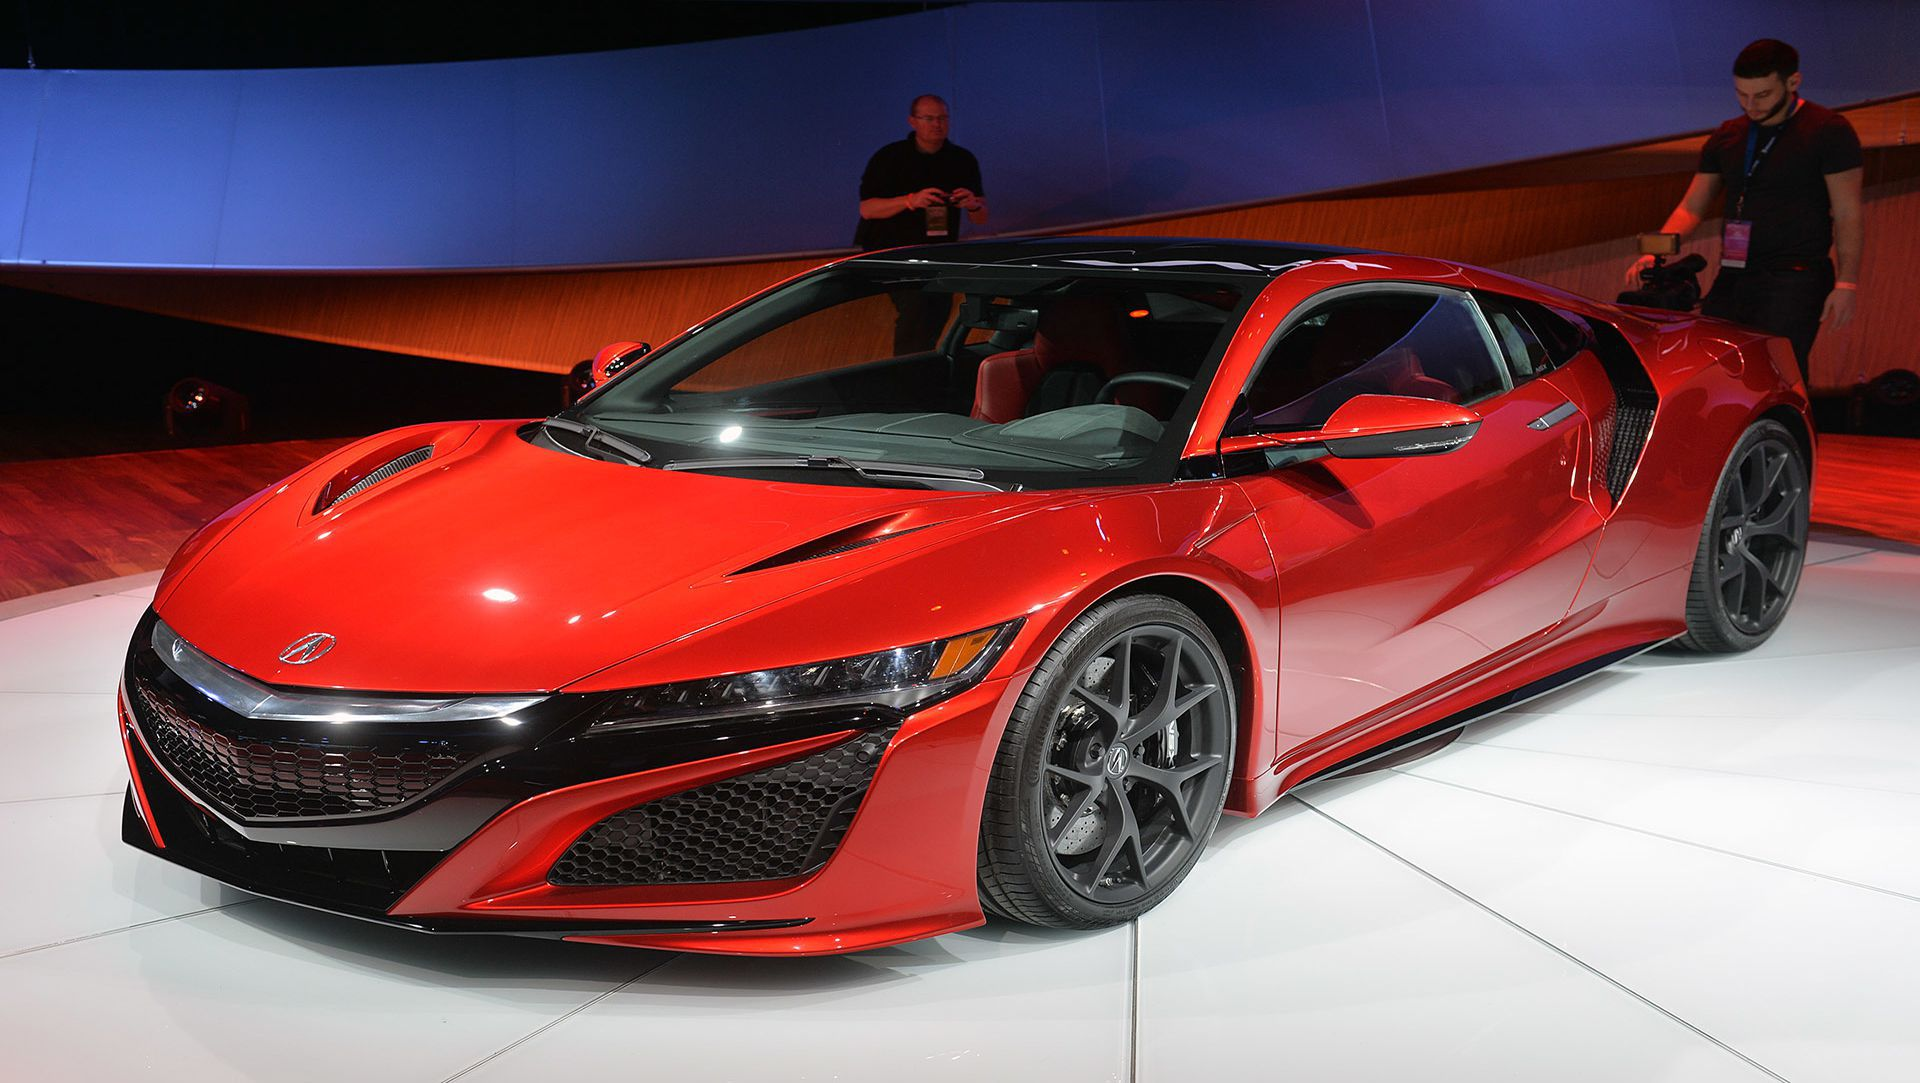 When The Original Acura NSX Made Its Debut Over 25 Years Ago, It Forever  Changed Sports Car World By Combining Exotic Car Styling And Performance  With A New ...